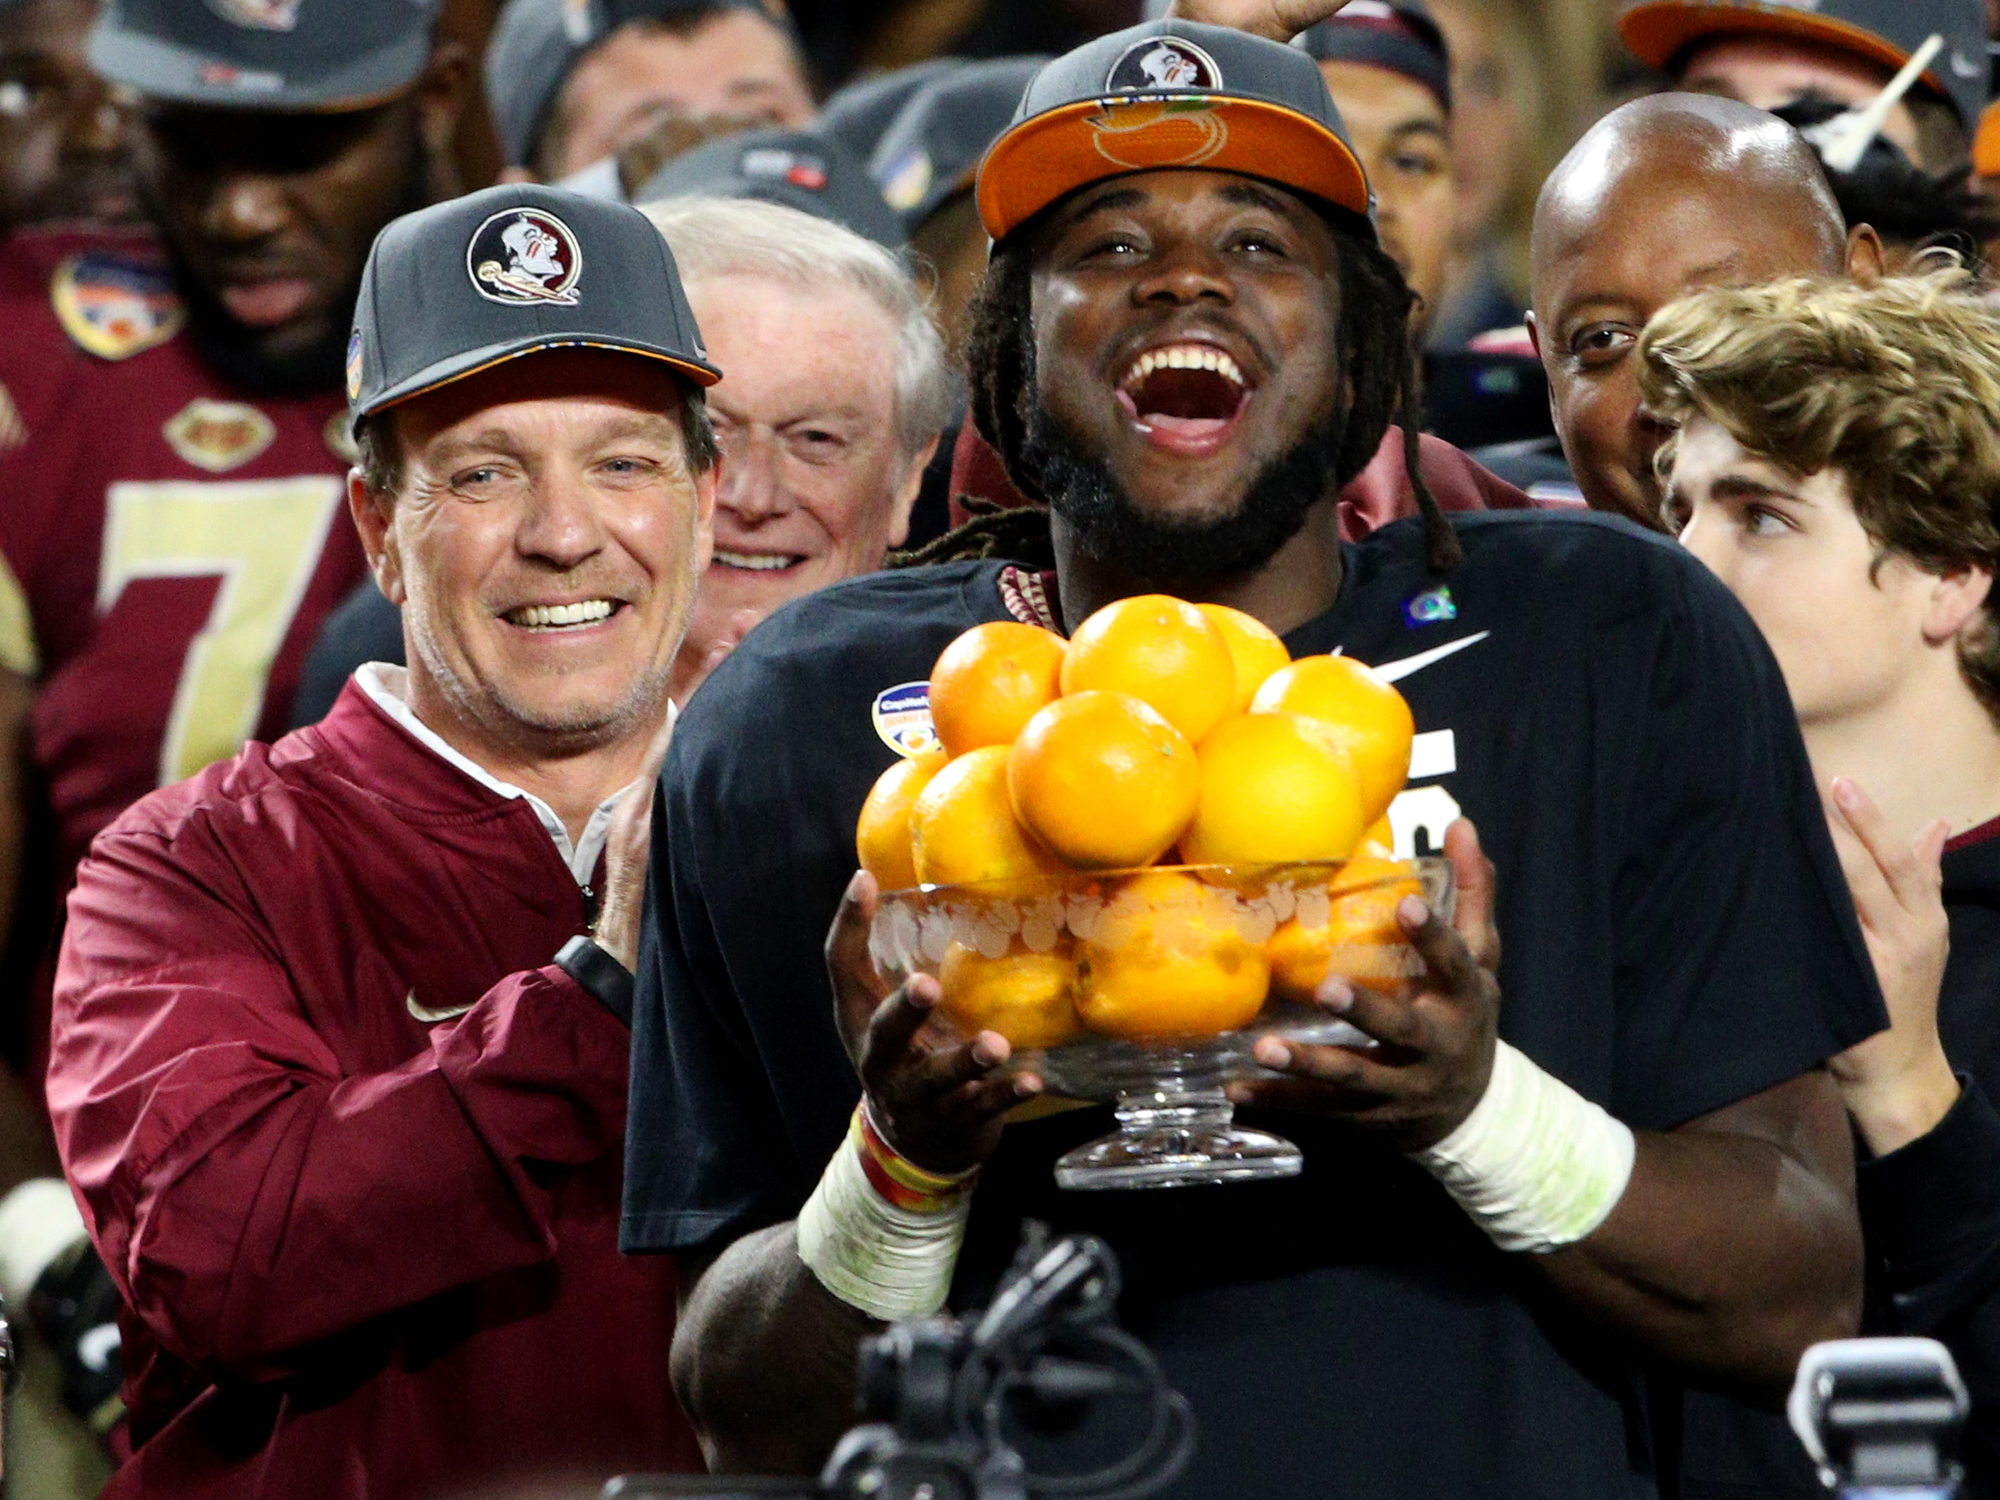 Thoughts on a insane Orange Bowl